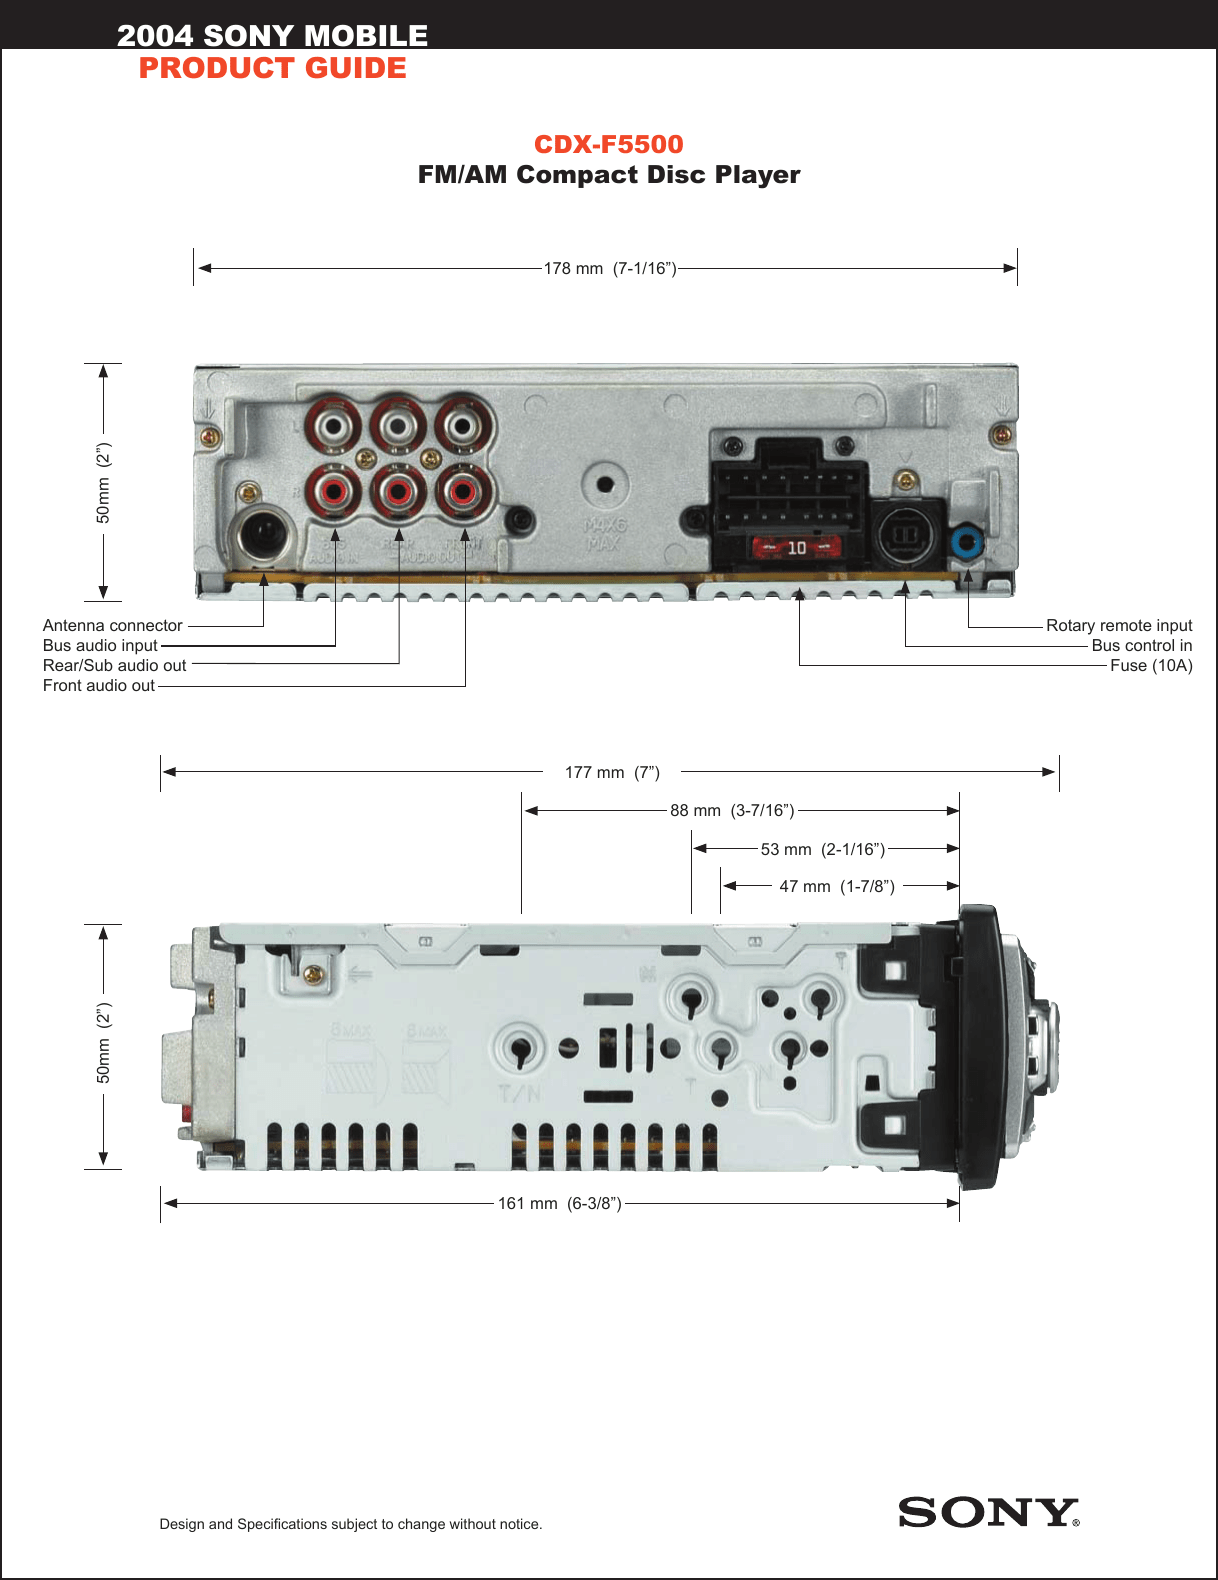 hight resolution of sony cdx f5500 marketing specifications sony m 610 wiring harness diagram page 2 of 2 sony